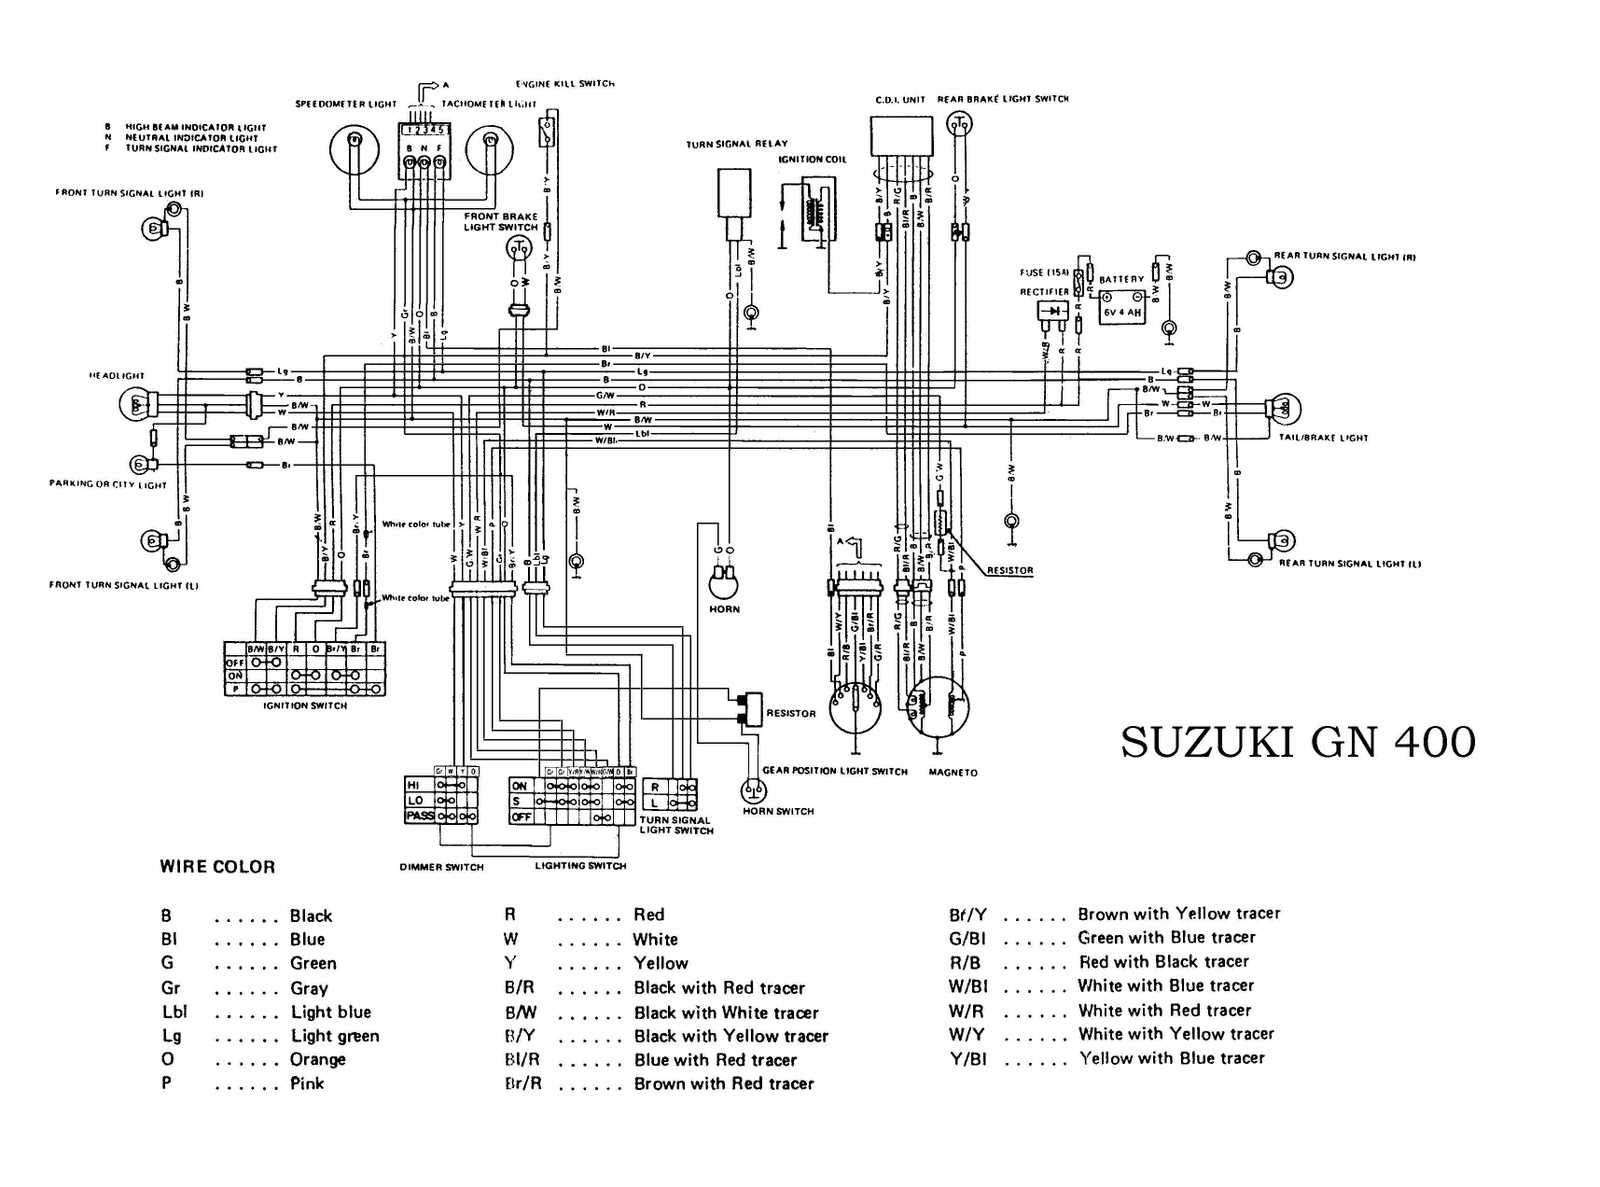 Suzuki Gn400 Electrical Wiring Diagram on fuse box diagram for 2004 ford expedition